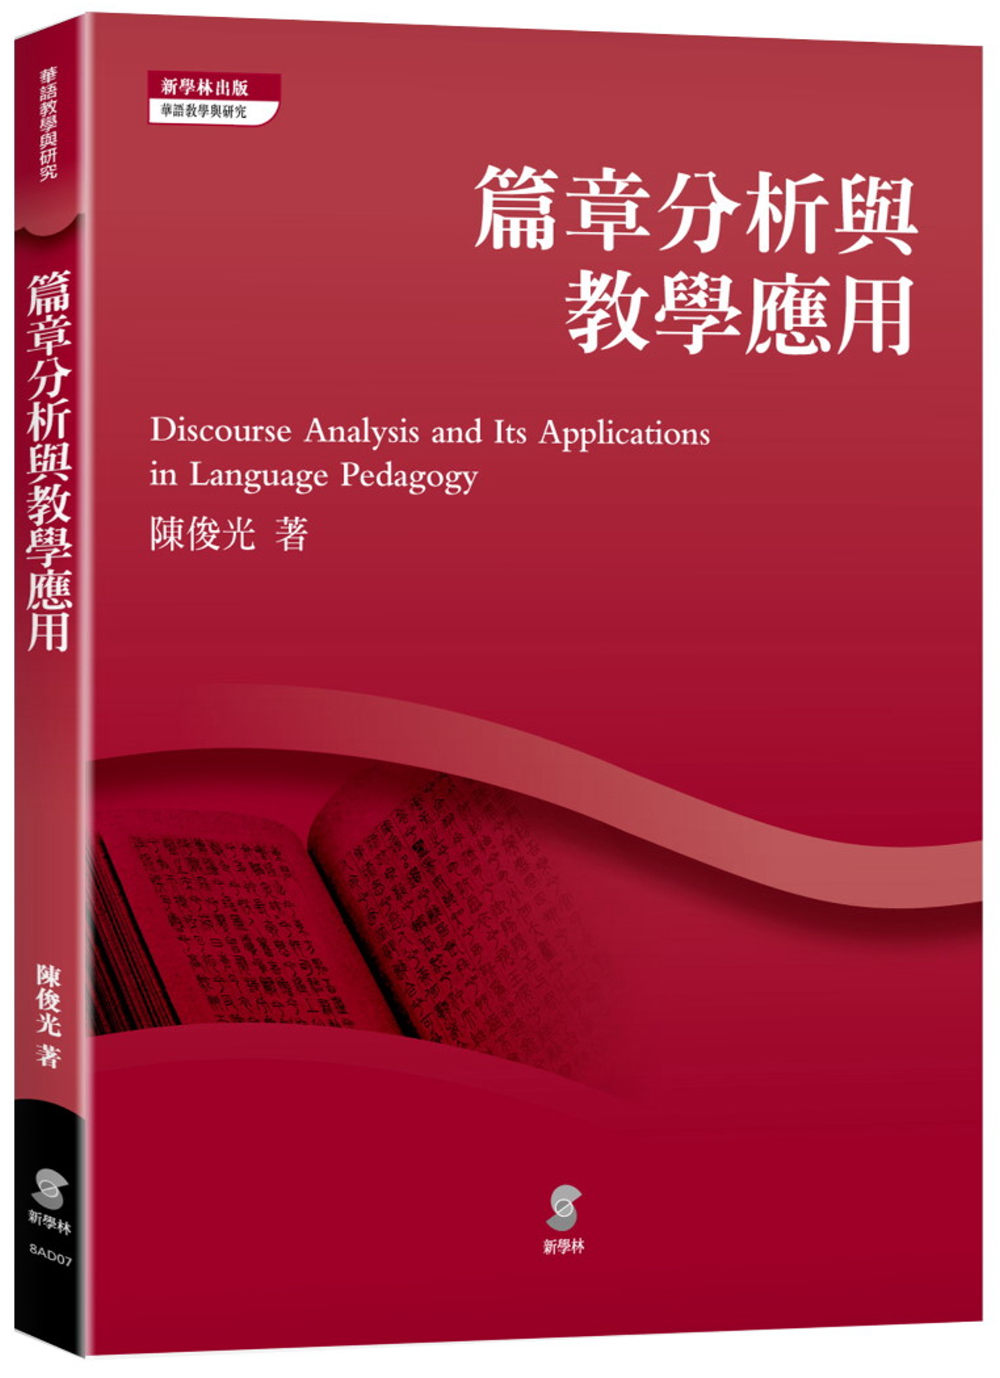 篇章分析與教學應用 =  Discourse analysis and its applications in language pedagogy /